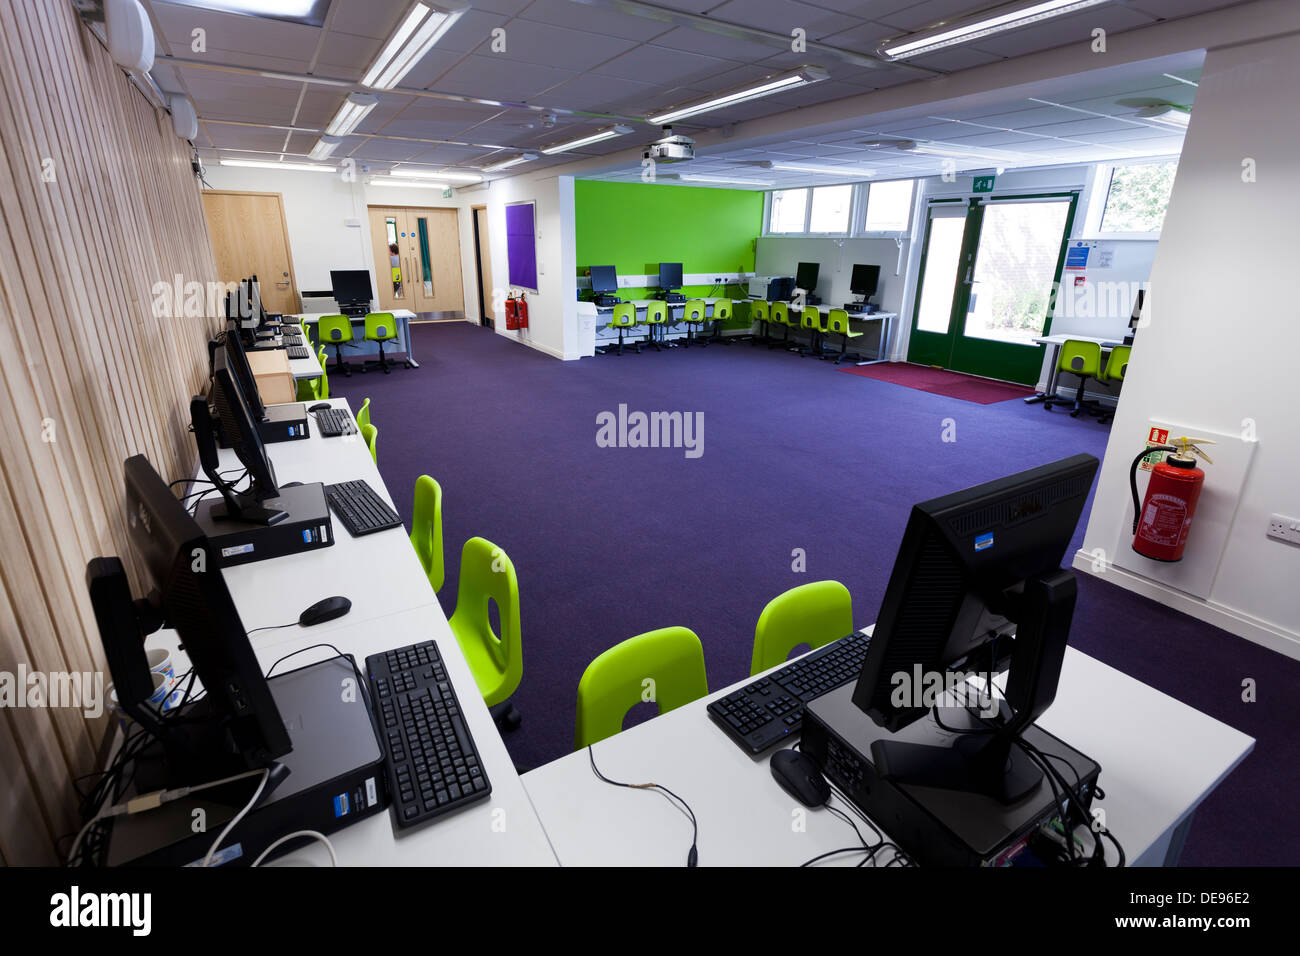 unoccupied computer room Infant School - Stock Image